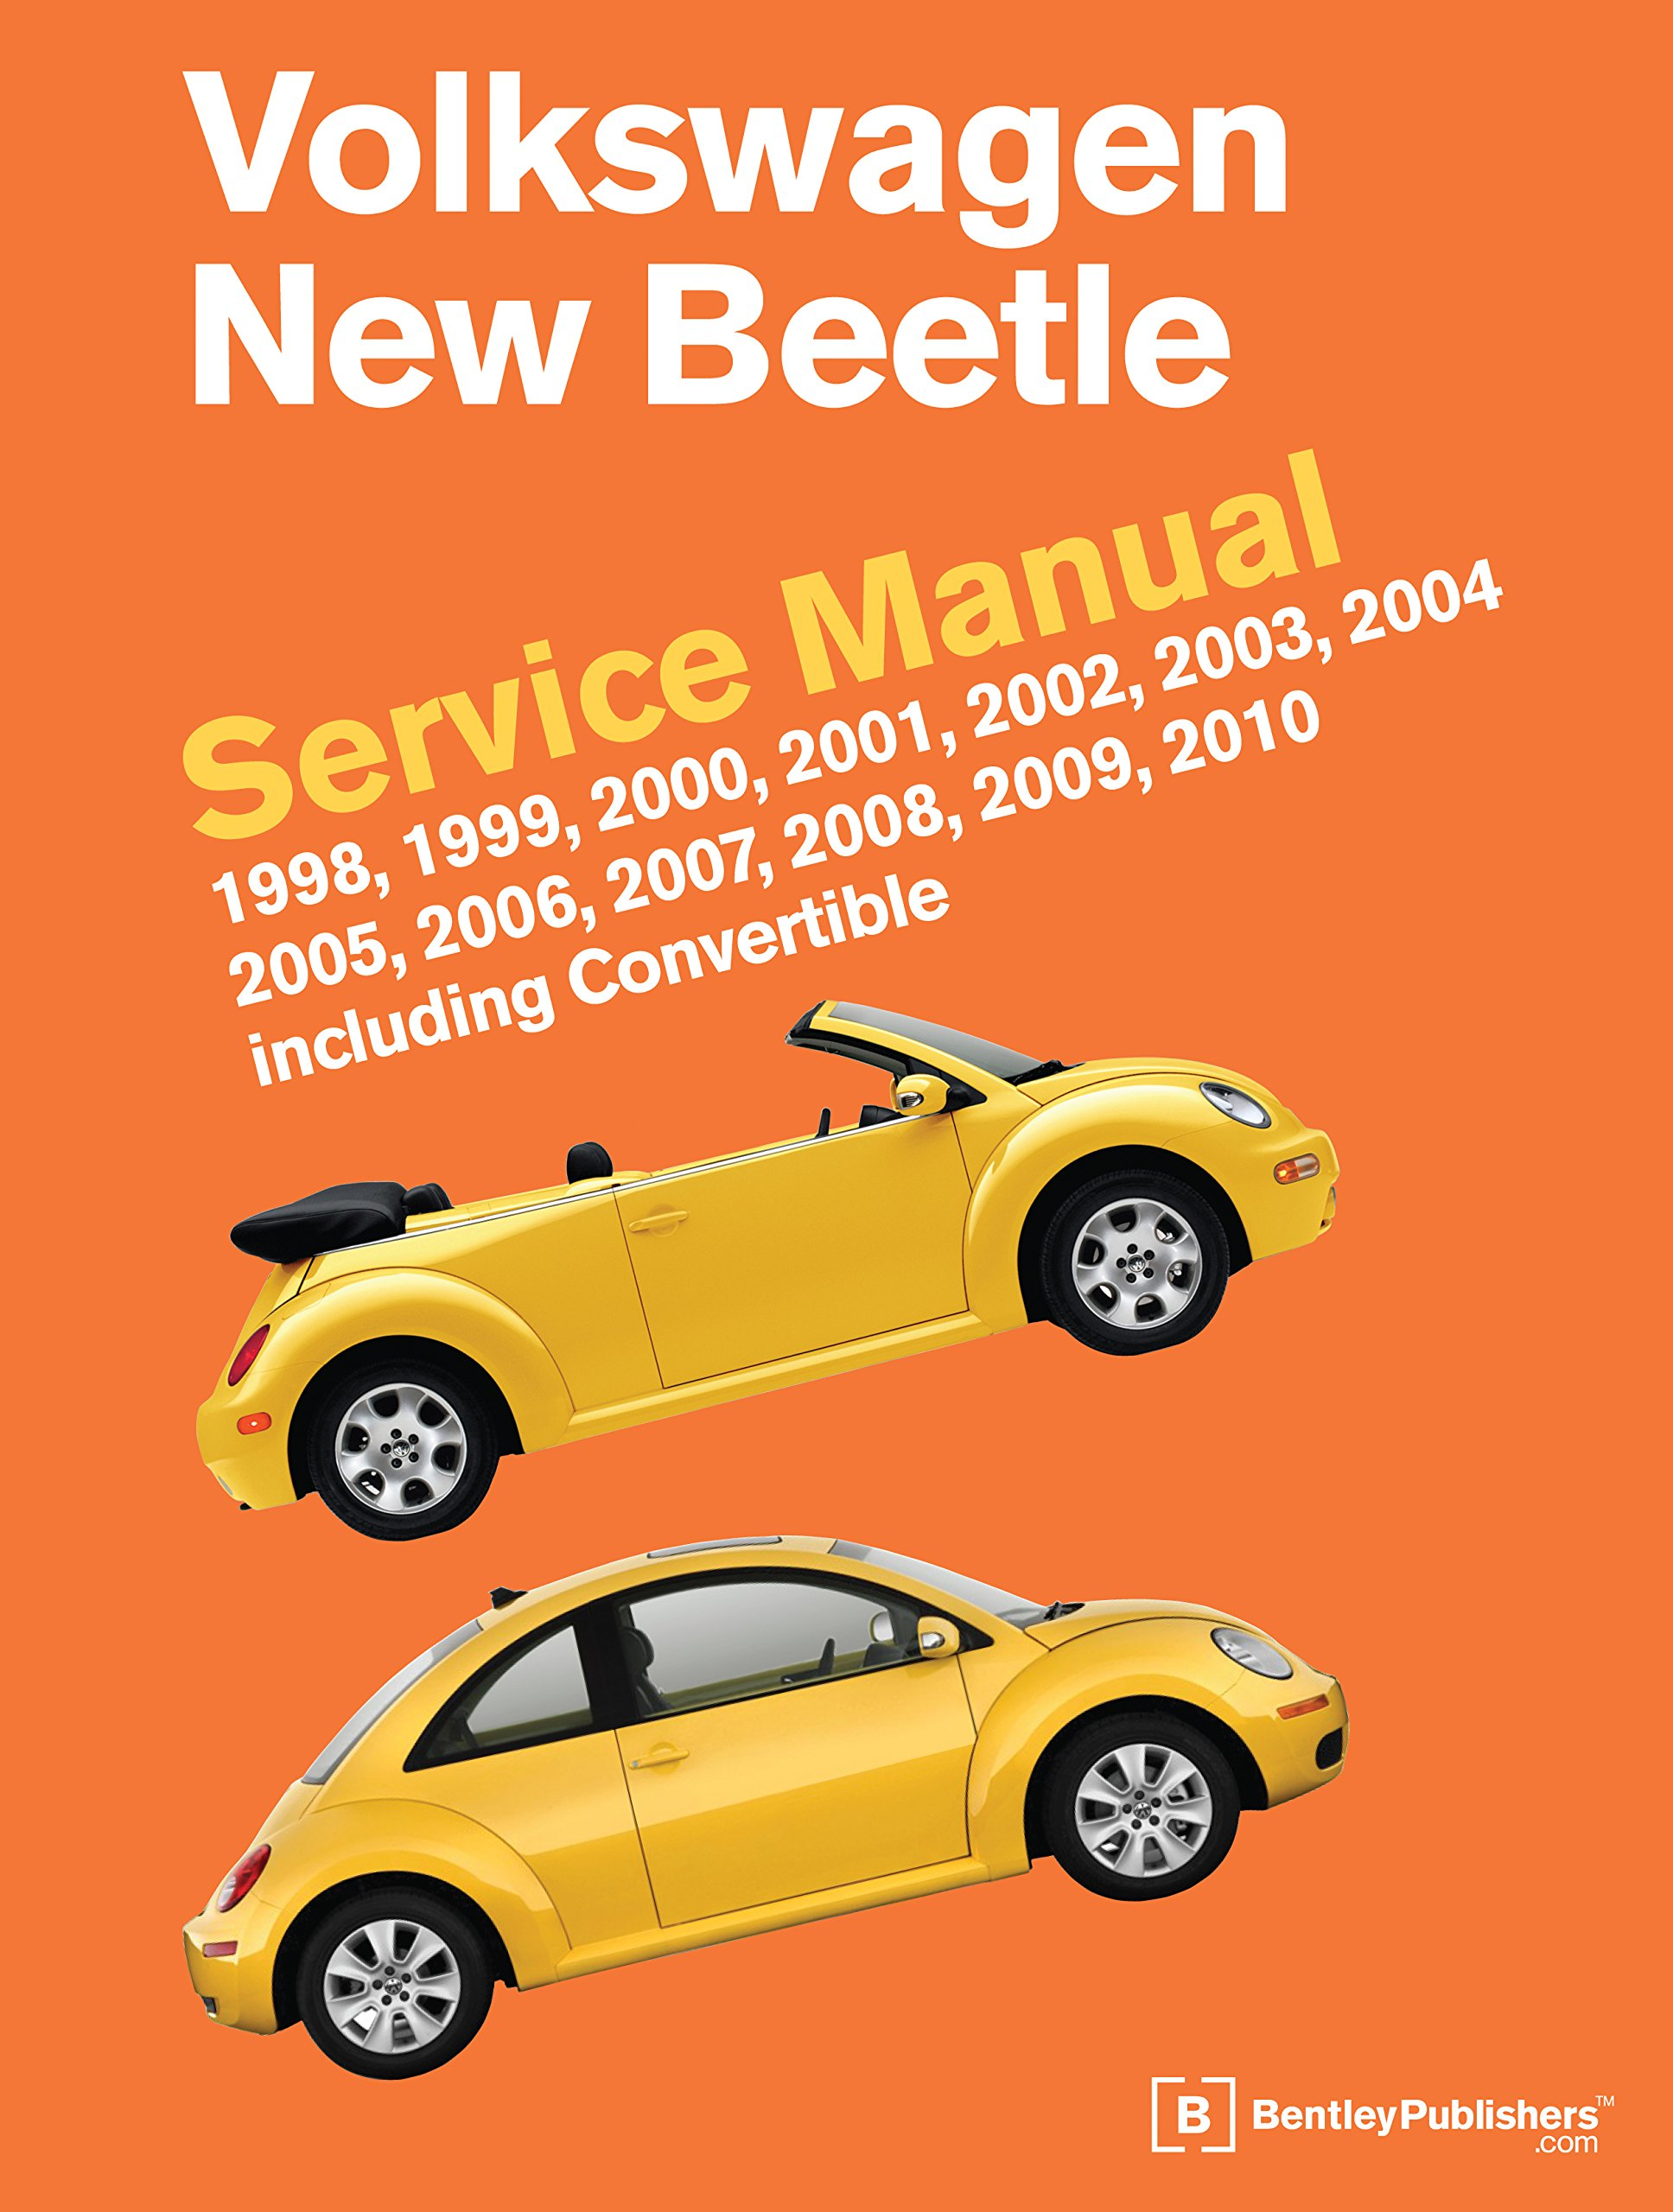 Volkswagen new beetle service manual 1998 1999 2000 2001 2002 volkswagen new beetle service manual 1998 1999 2000 2001 2002 2003 2004 2005 2006 2007 2008 2009 2010 including convertible amazon fandeluxe Gallery